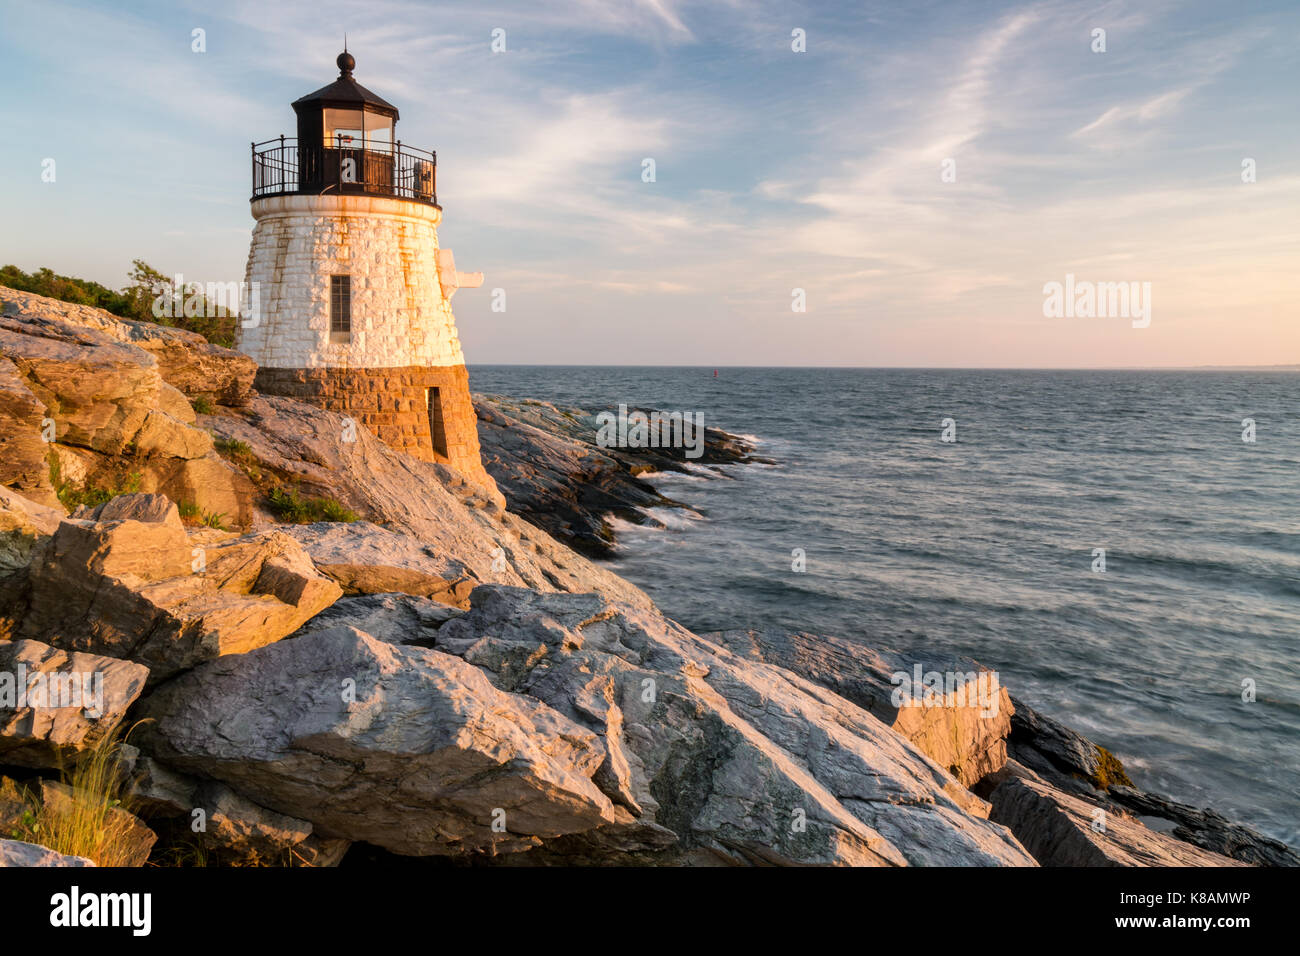 Castle Hill Lighthouse bathed with the warm glow of sunset, Newport, Rhode Island - Stock Image